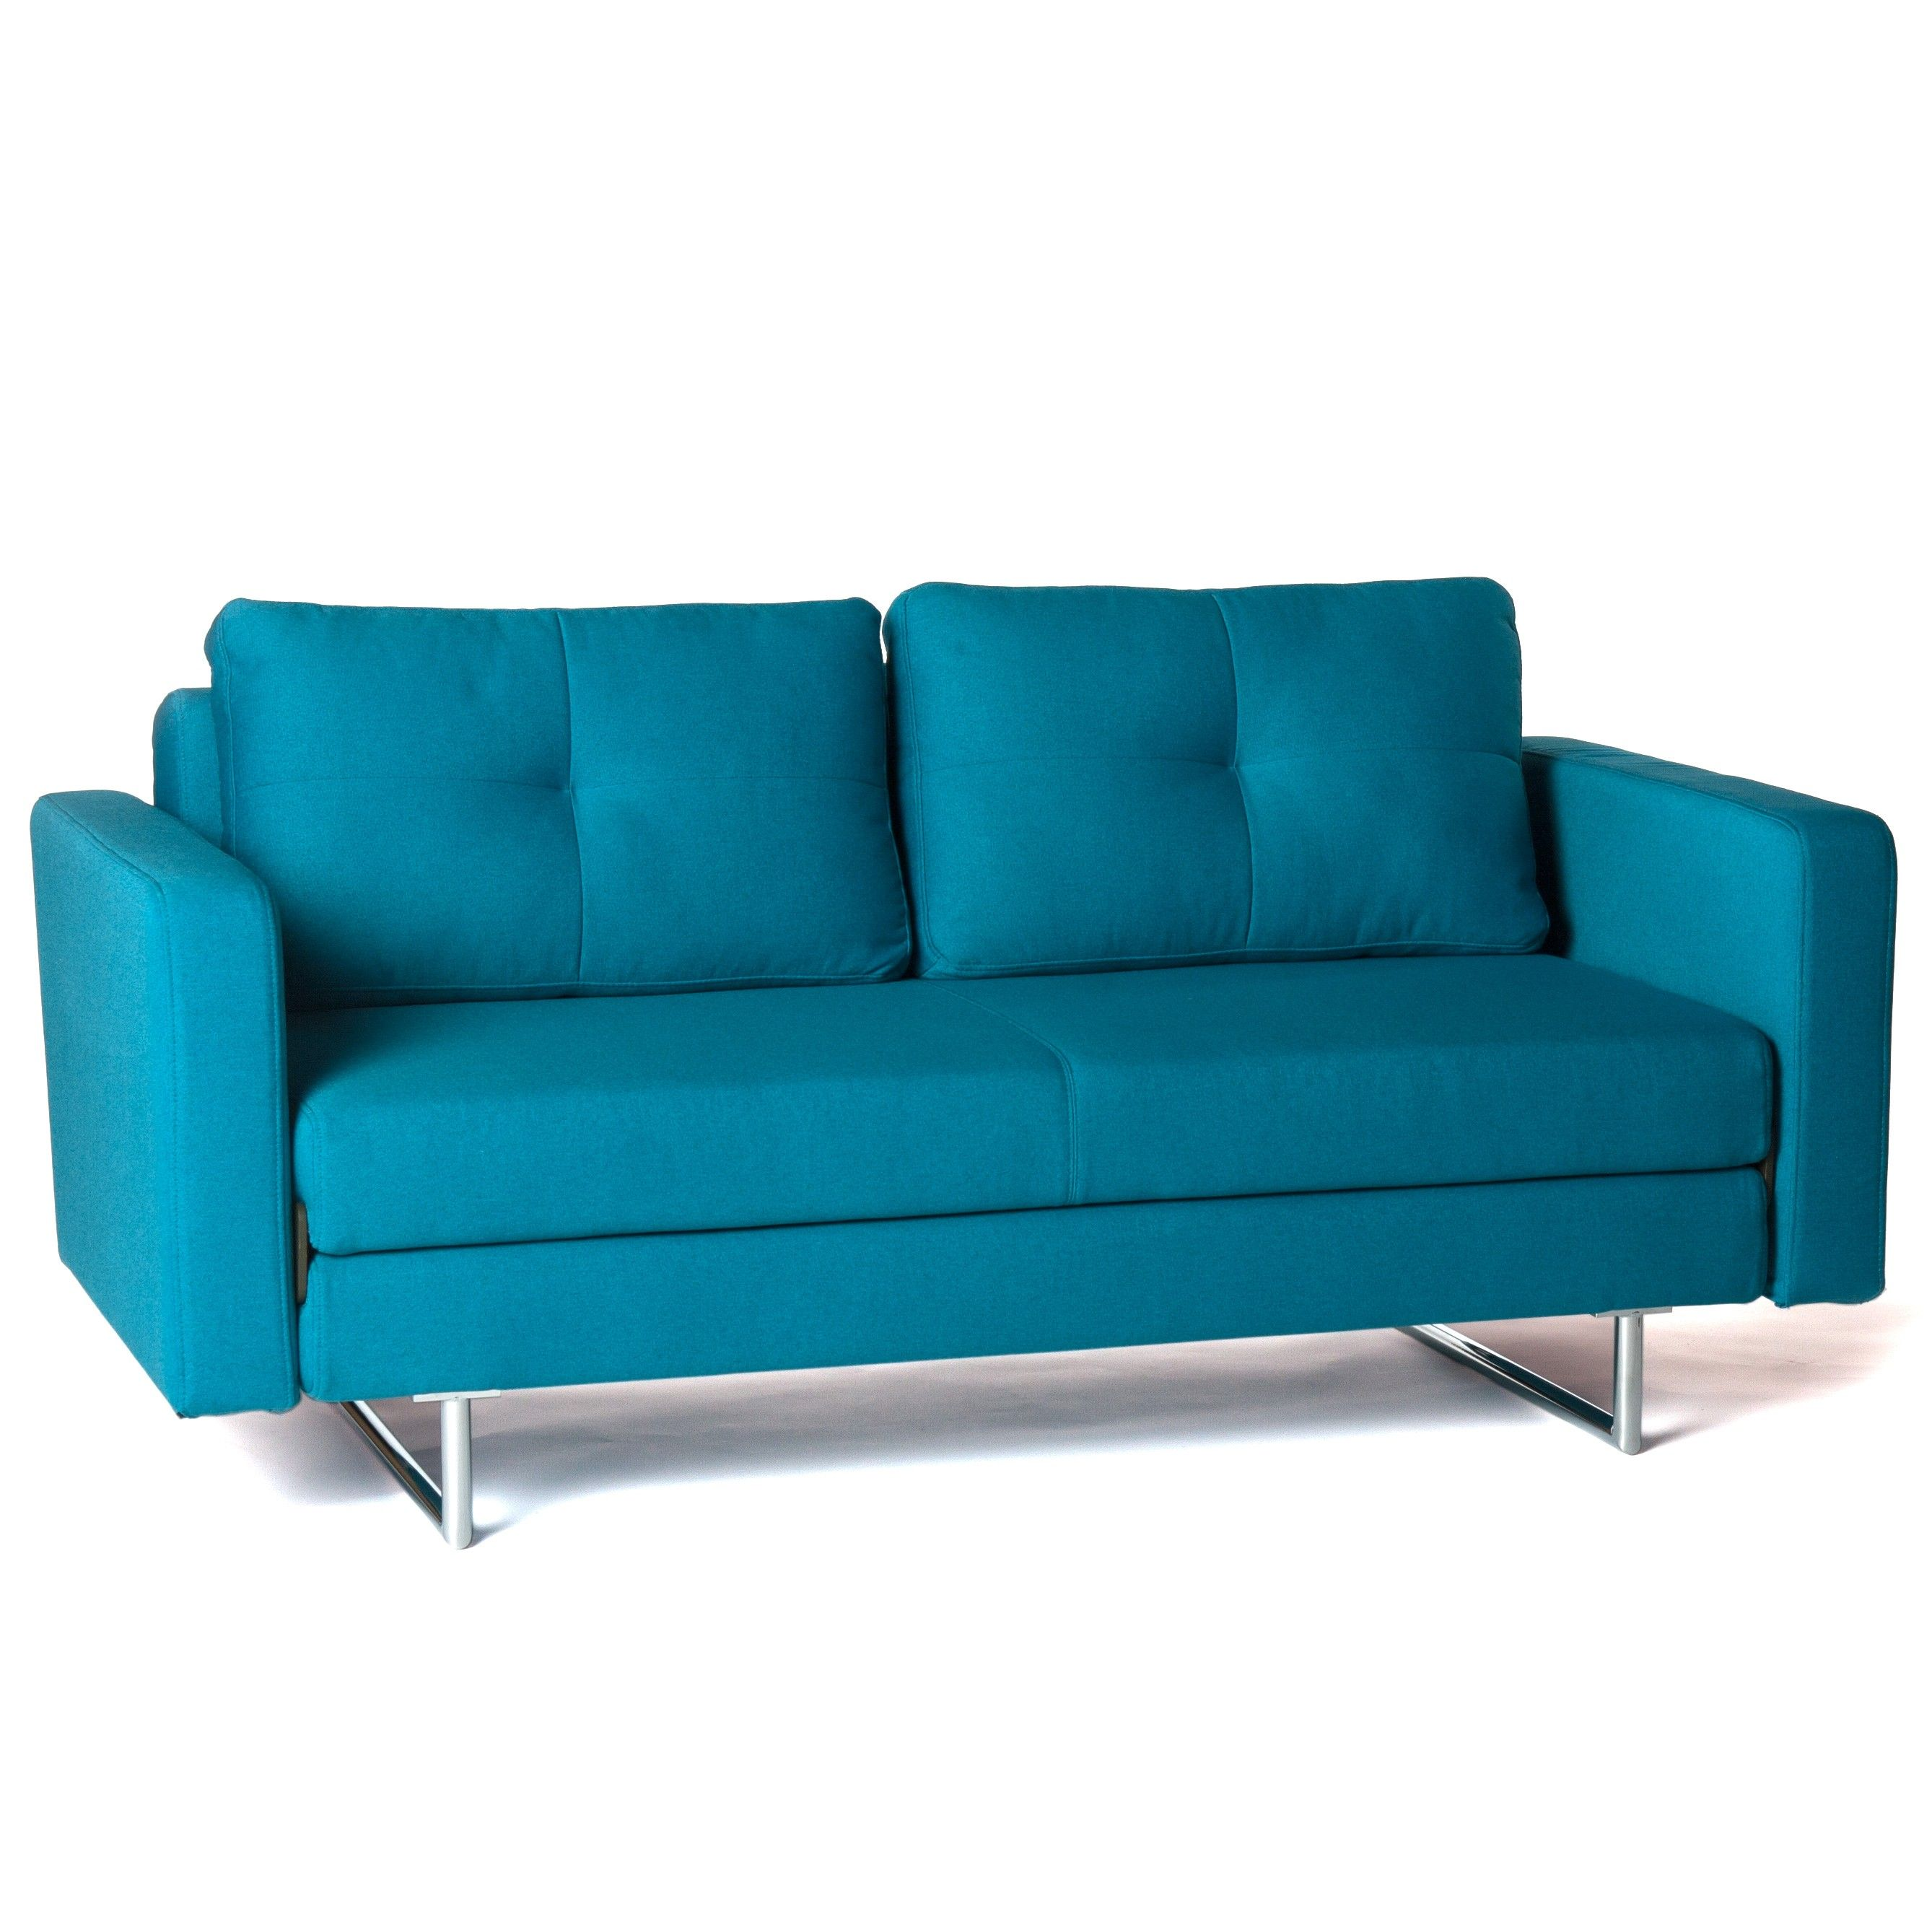 Sofa Bed With Arms Blue Fabric Sofa Bed Design Queen Size Sofa Bed Sofa Bed Blue